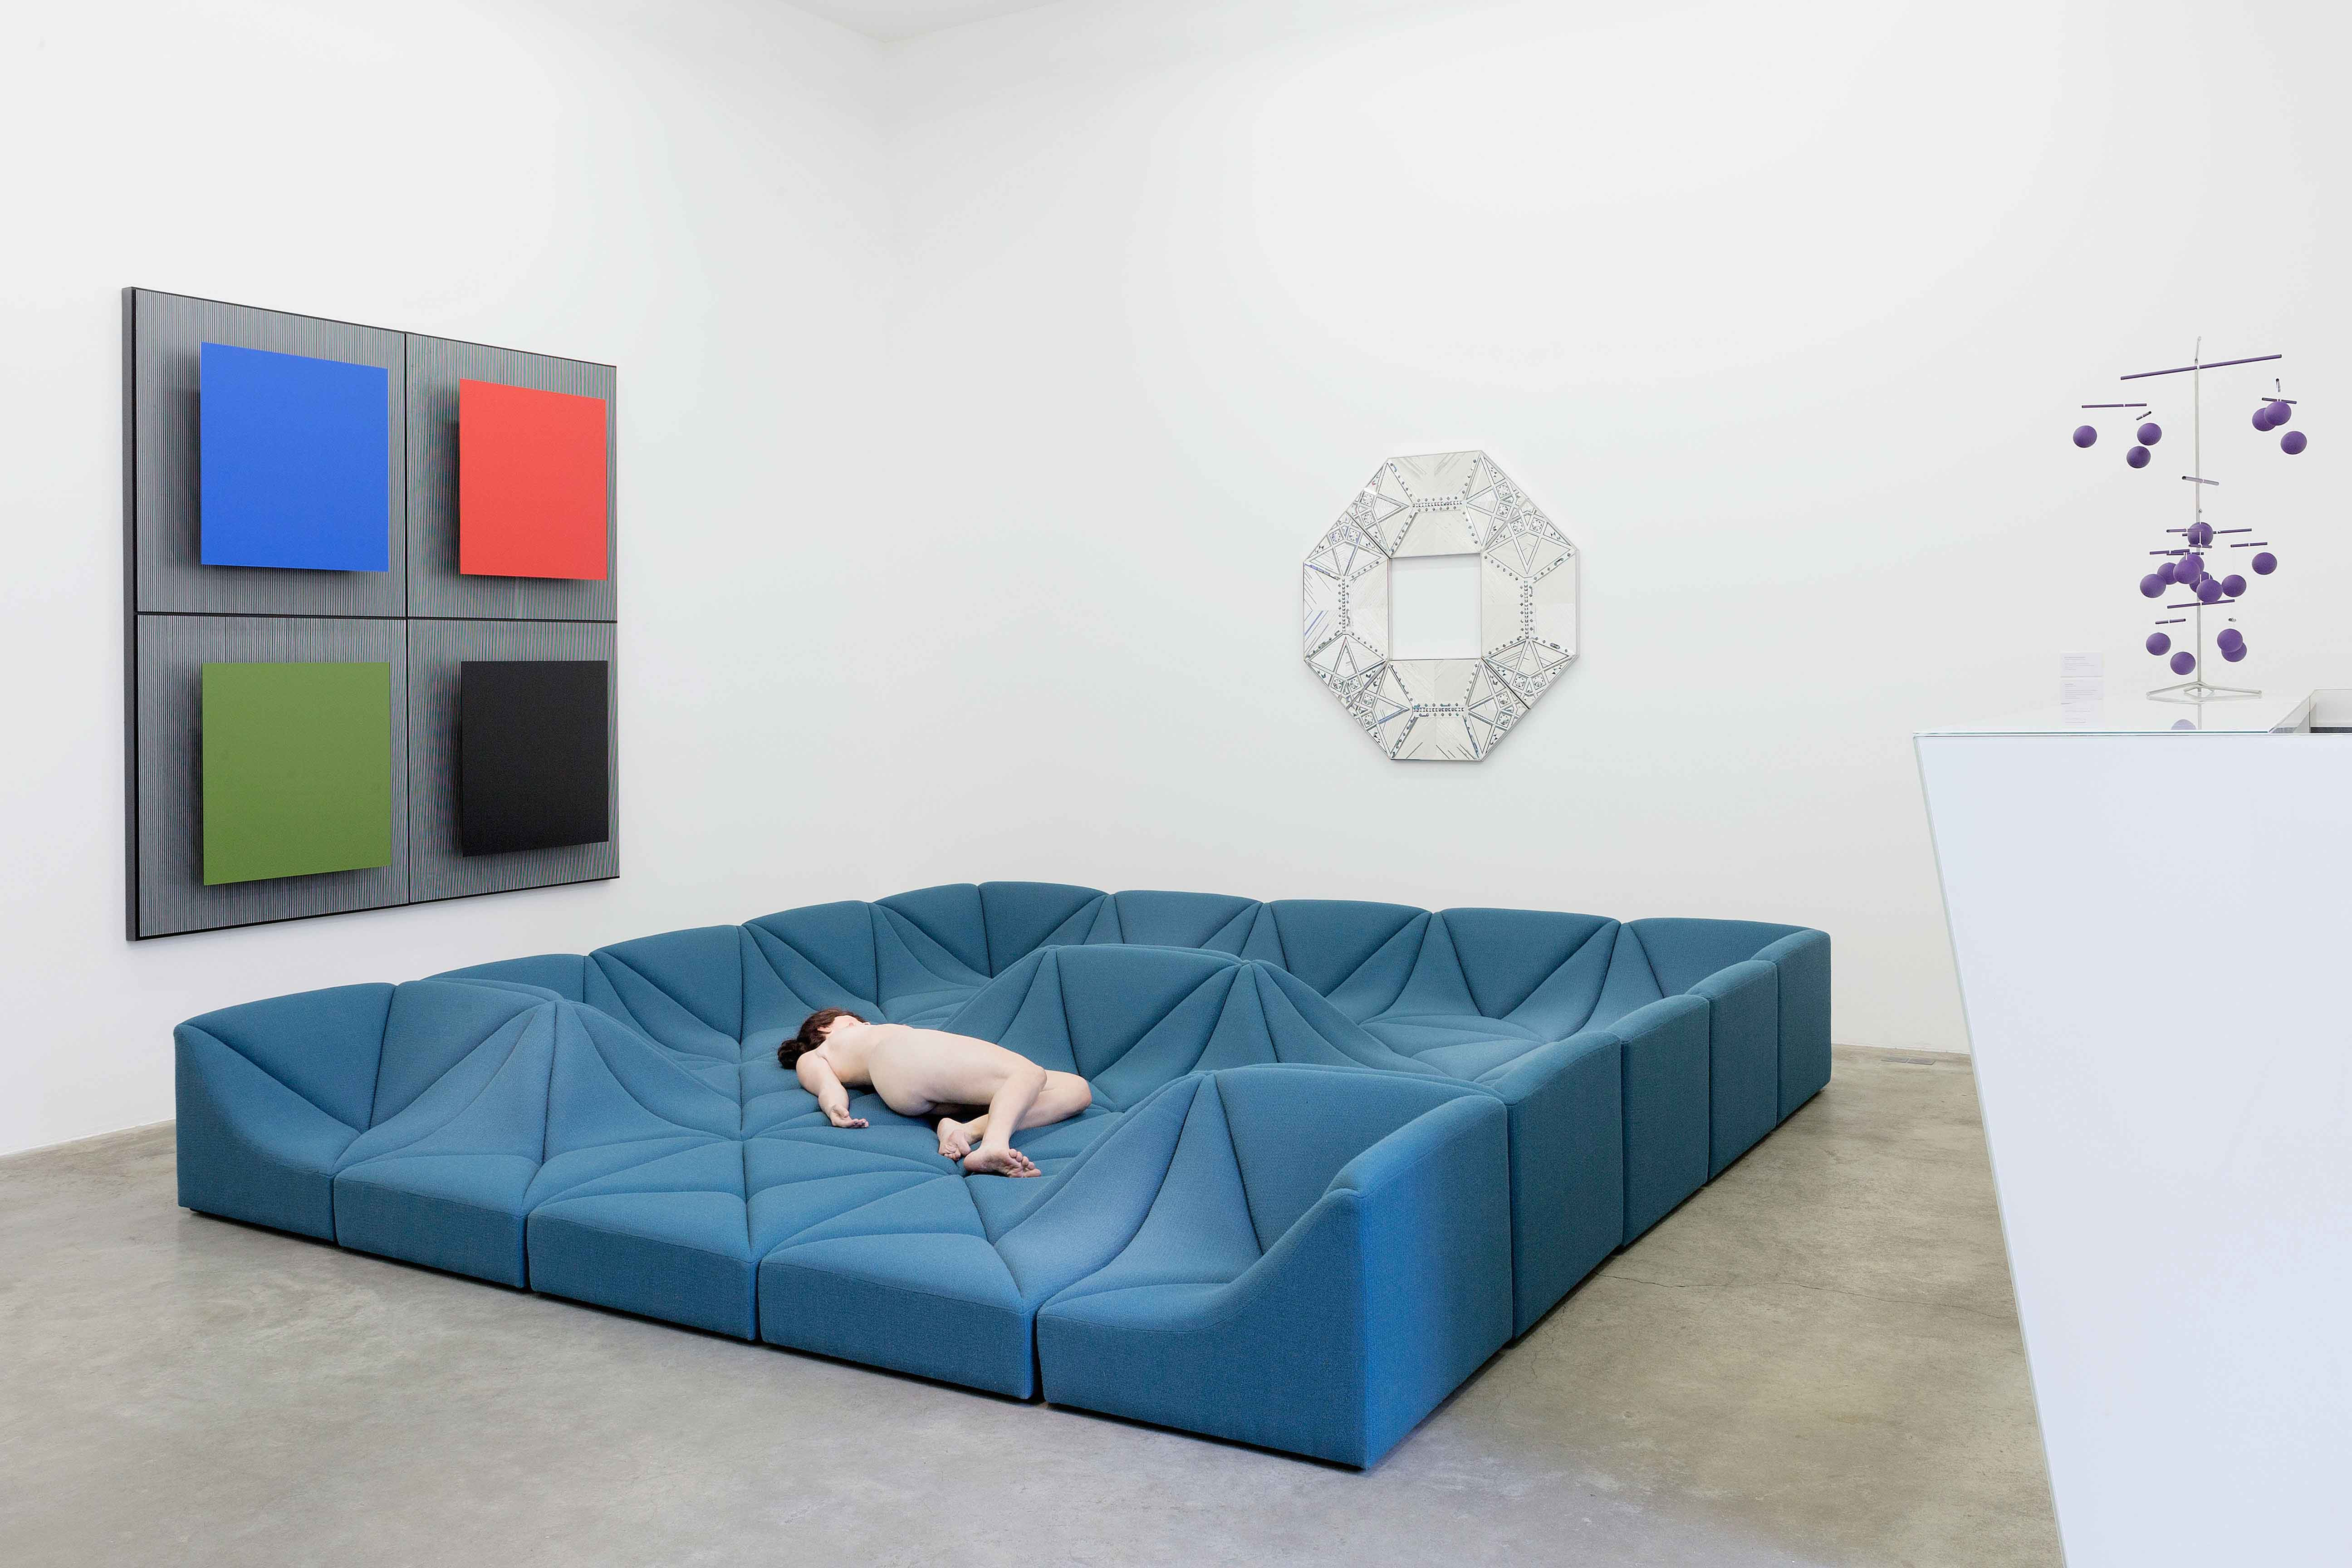 The Galerie Perrotin pays tribute to Pierre Paulin, a true visionary and unusual designer